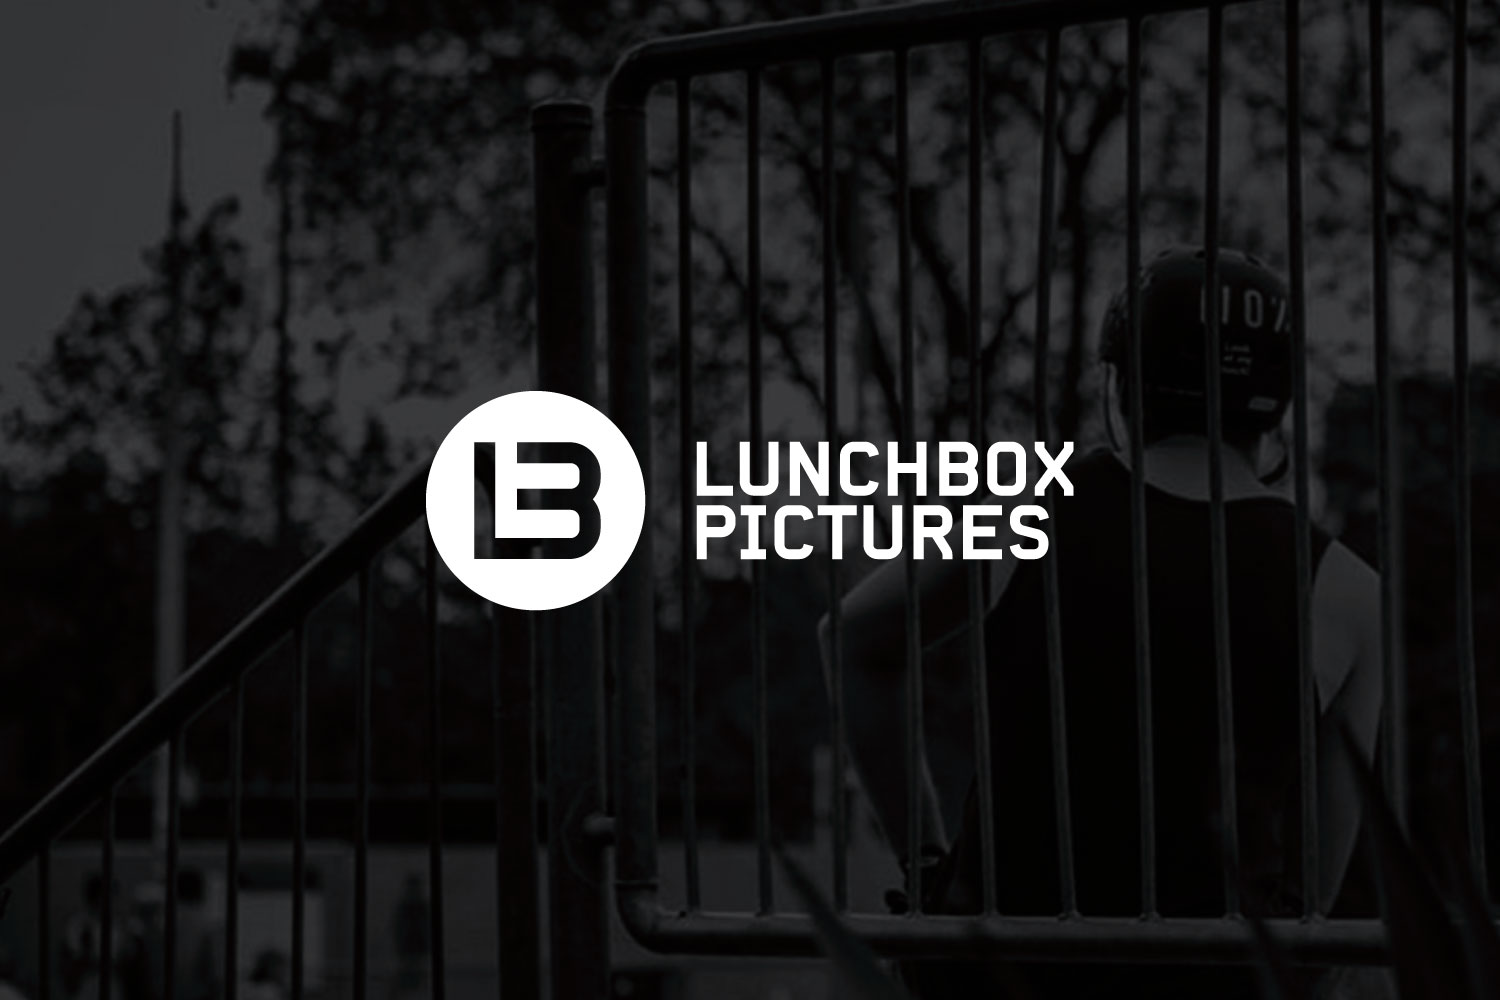 Lunchbox Pictures Logo design & Branding, Graphic design melbourne, branding design melbourne, branding design, packaging design melbourne, design studio melbourne, graphic design